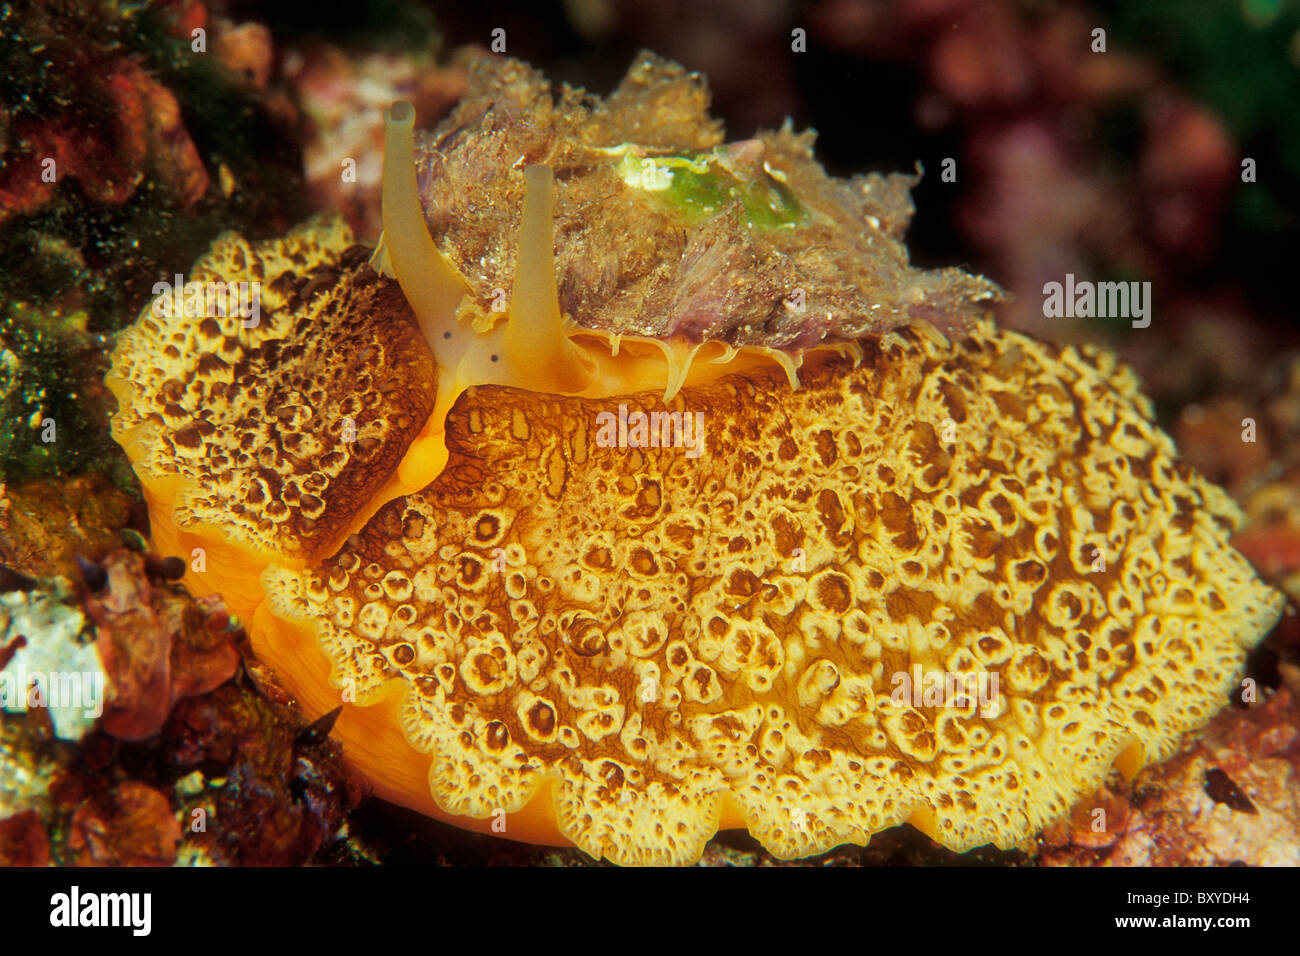 Umbrella Sidegill Slug, Umbraculum mediterraneum, Unije, Adriatic Sea, Croatia - Stock Image